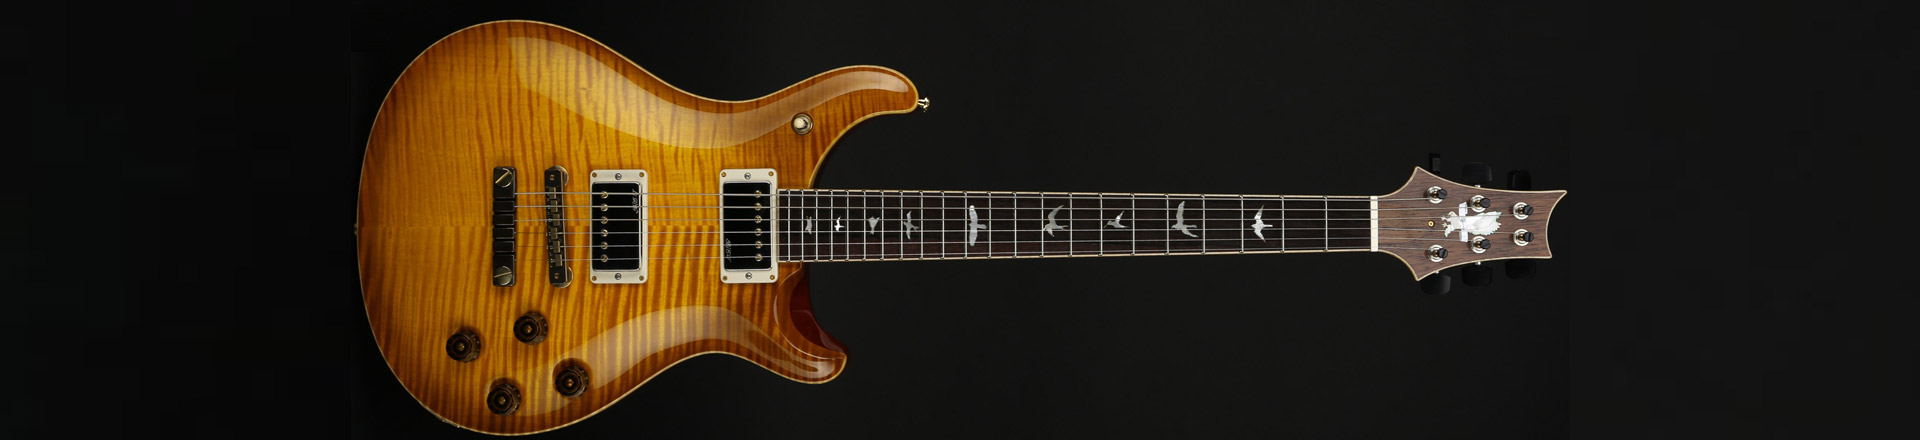 PRS przedstawia Private Stock McCarty 594 Graveyard Limited